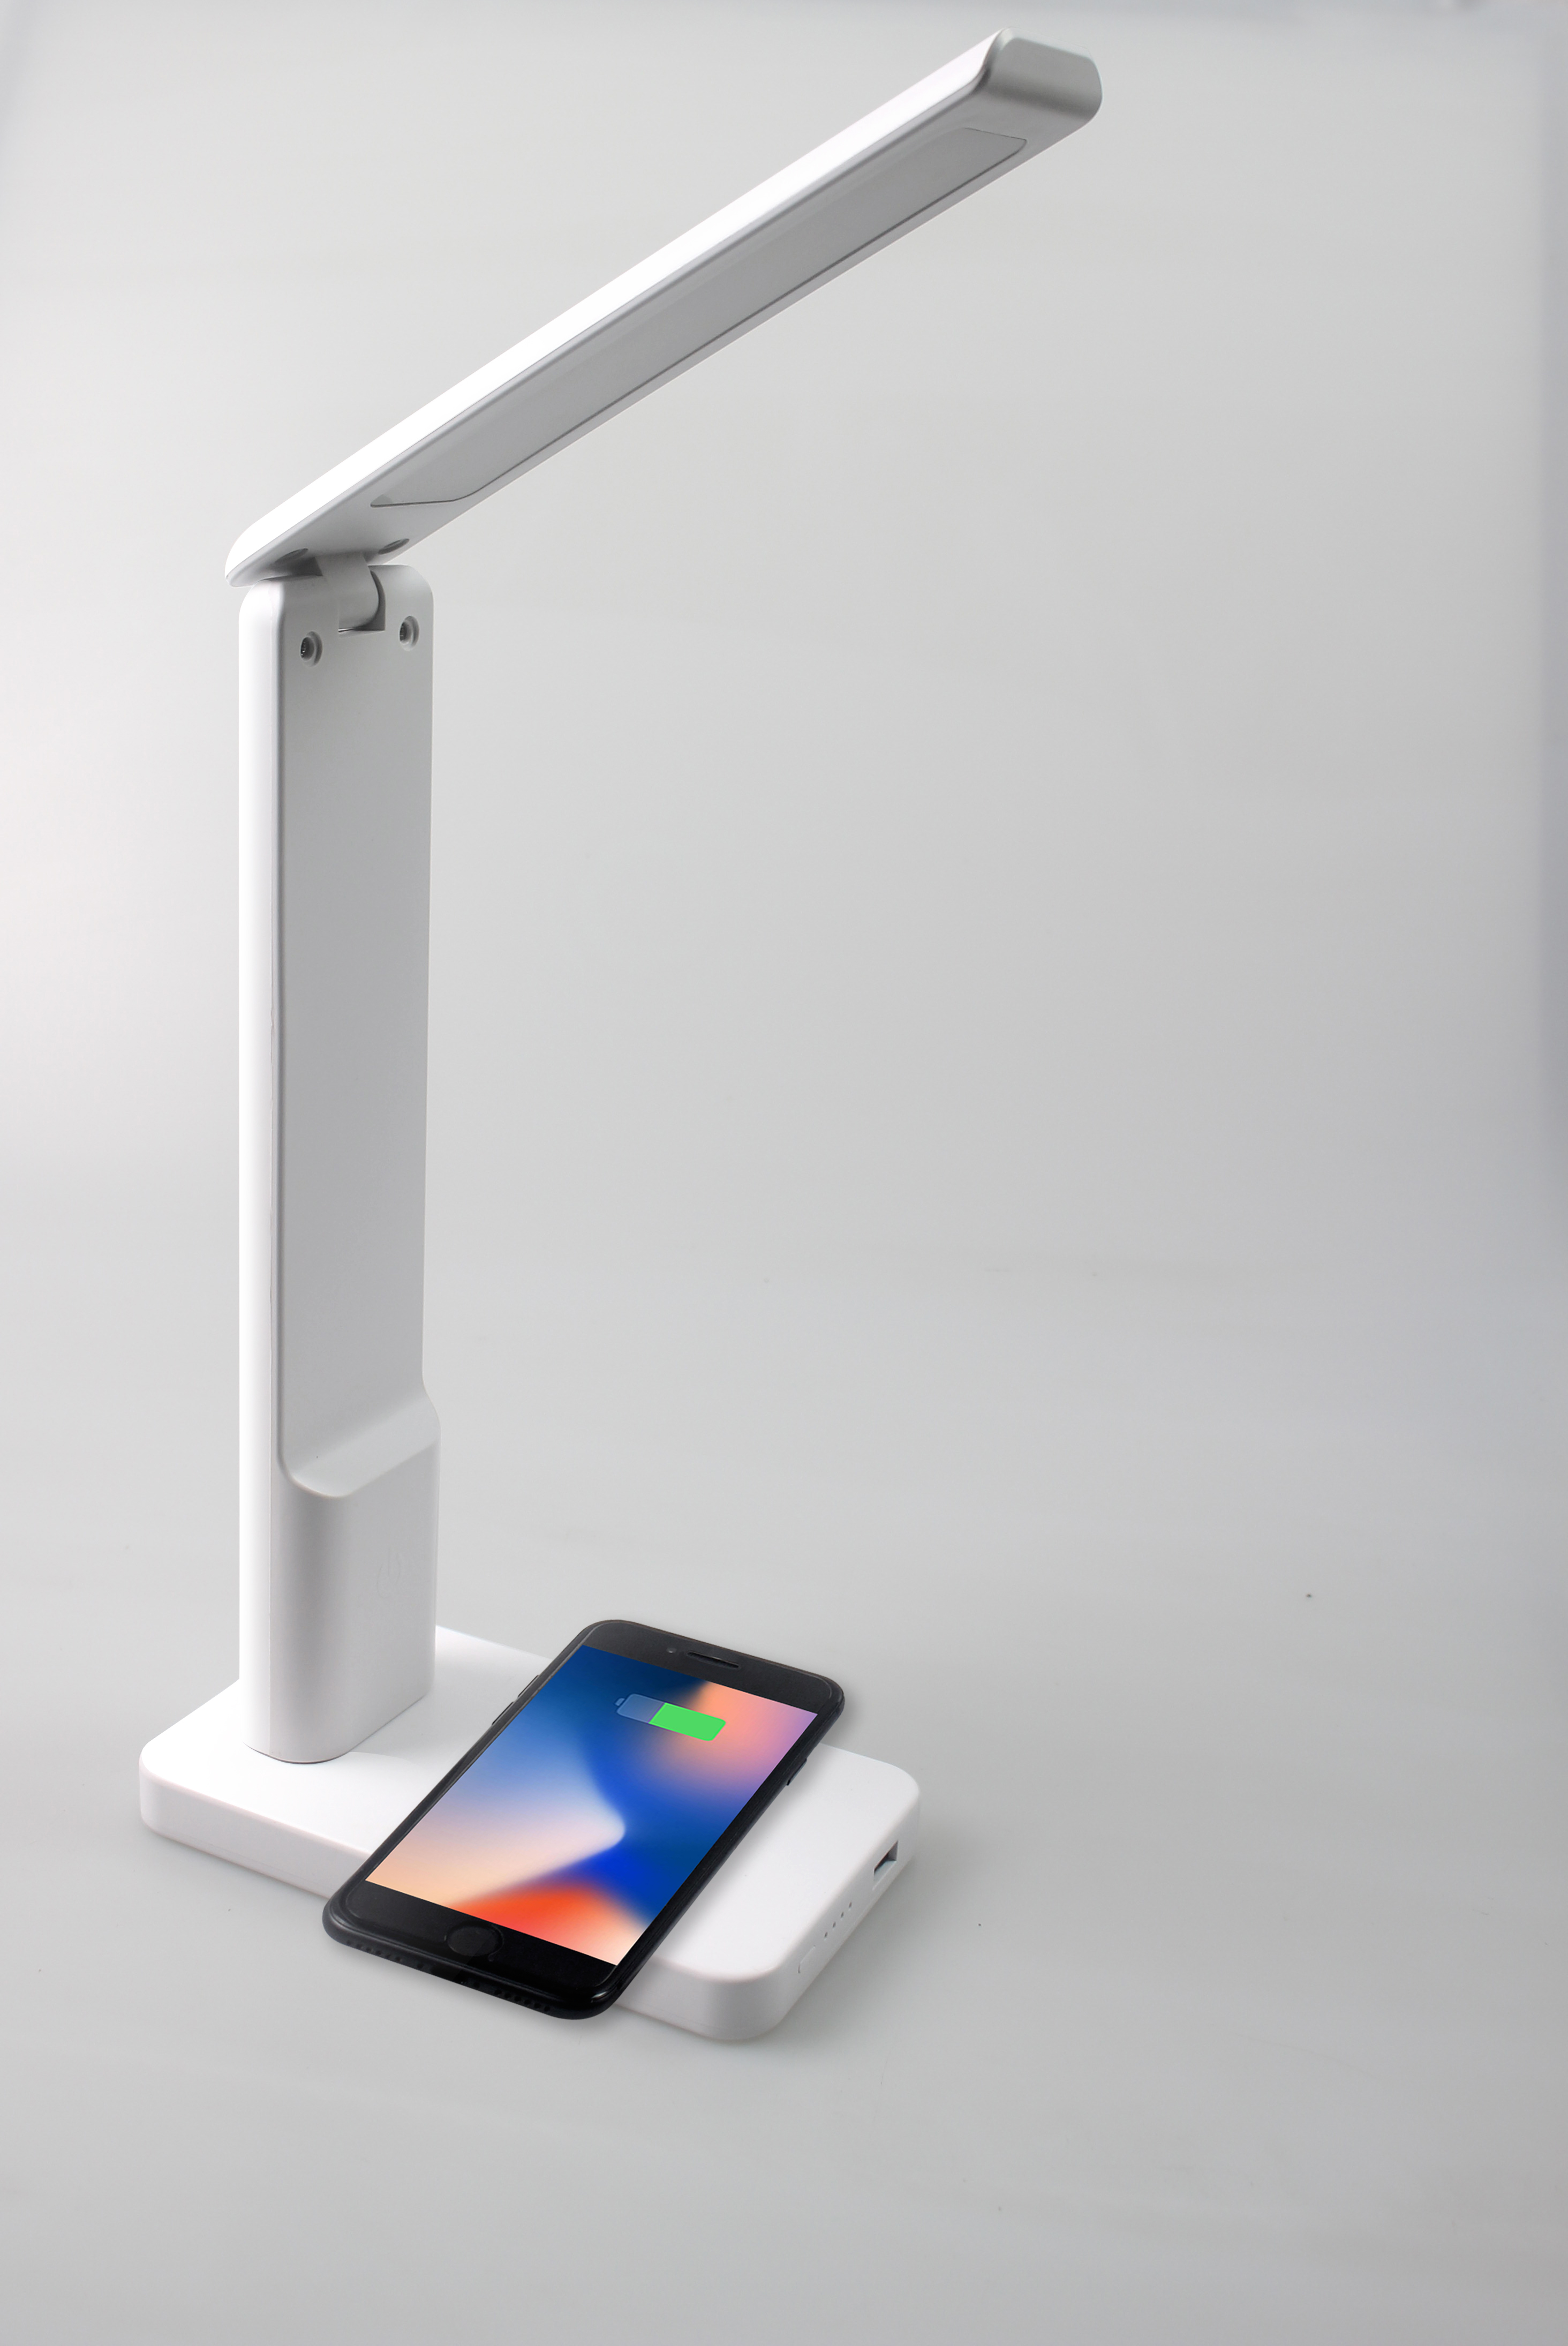 LED Desk Lamp Eye-Protection Fast Wireless Charger USB Charging Port LED Table Lamp